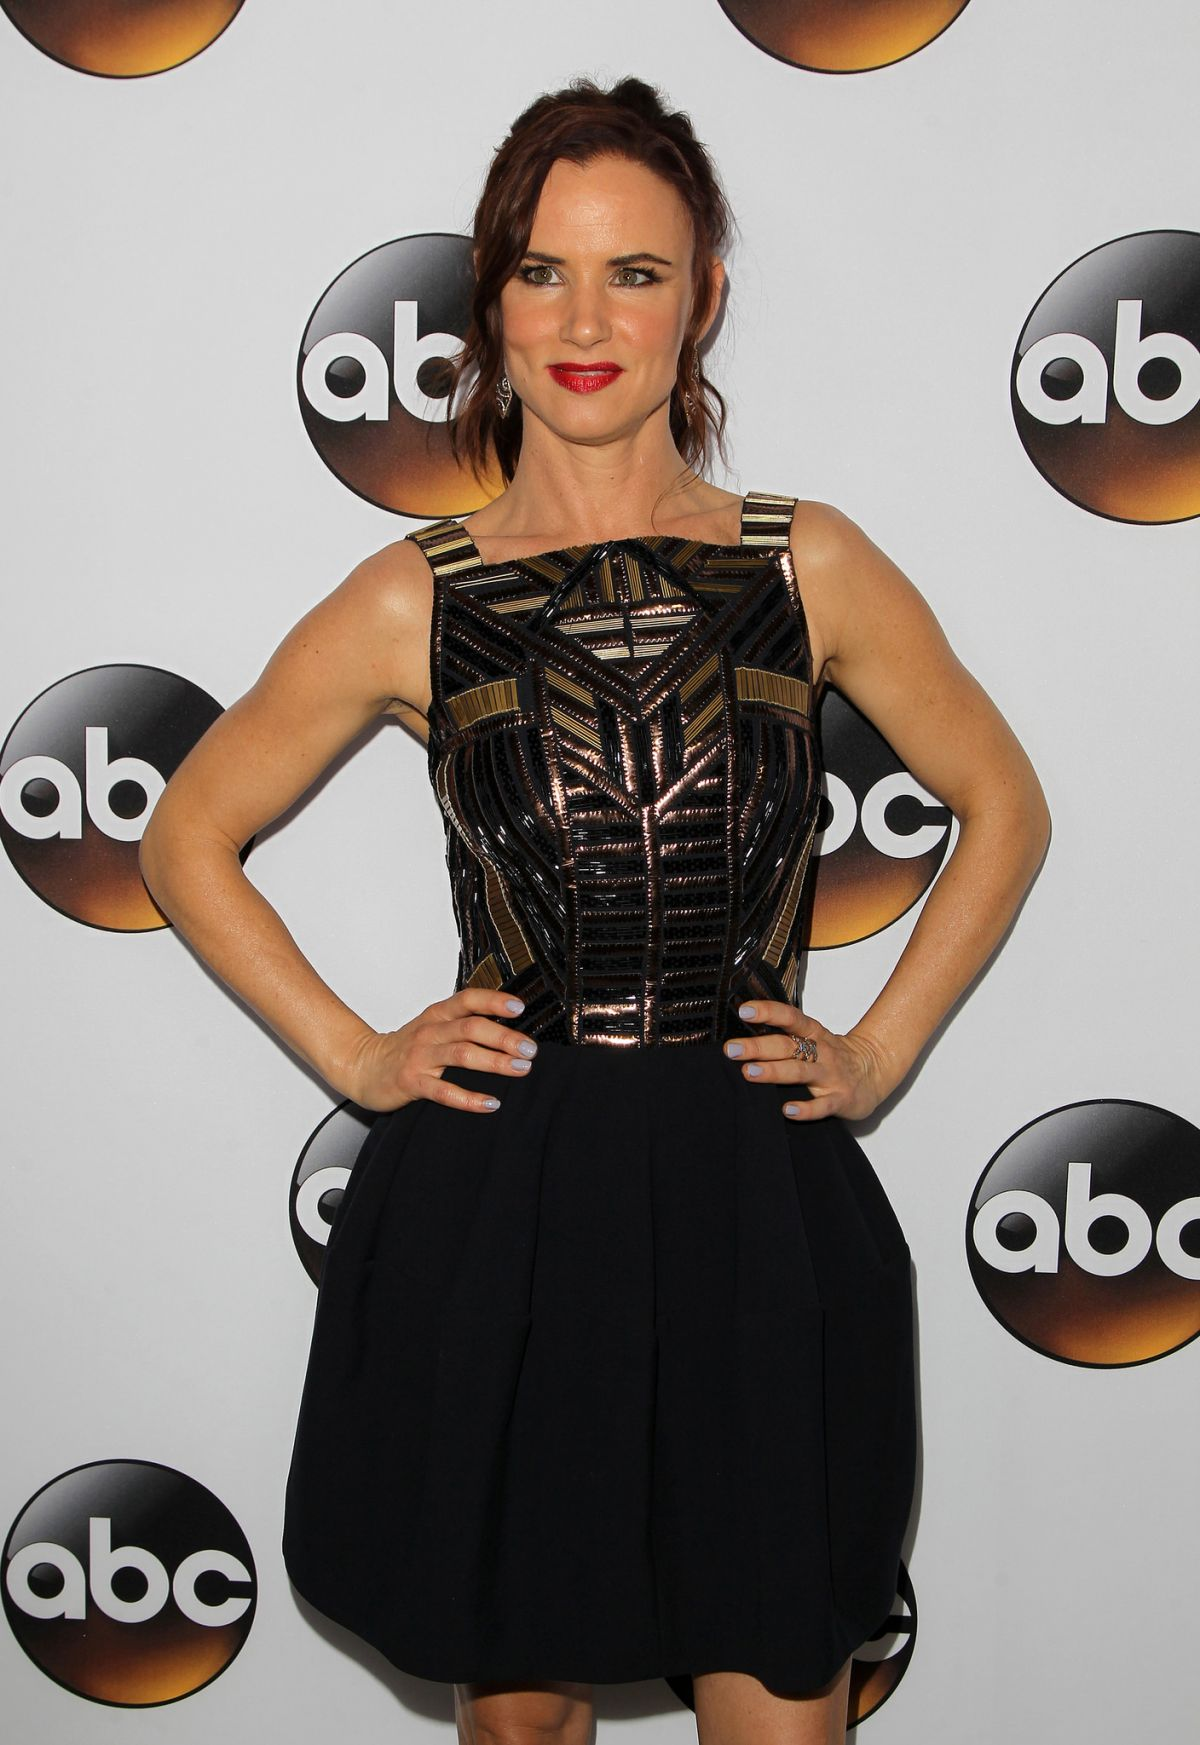 JULIETTE LEWIS at Disney and ABC Television Group TCA Winter Press Tour in Pasadena